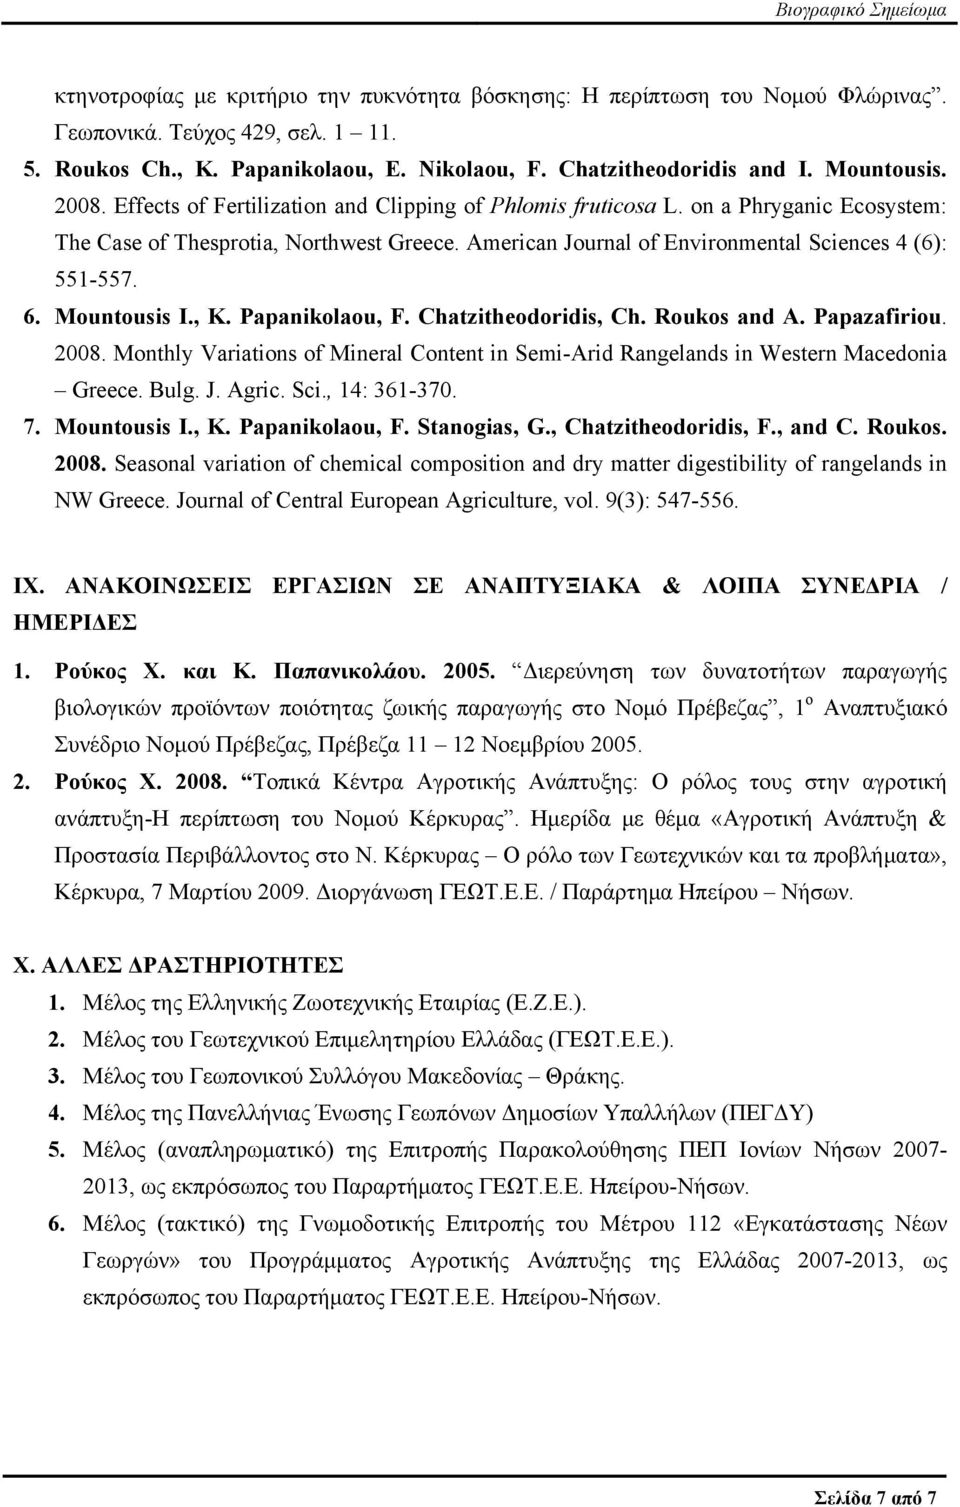 Mountousis I., K. Papanikolaou, F. Chatzitheodoridis, Ch. Roukos and A. Papazafiriou. 2008. Monthly Variations of Mineral Content in Semi-Arid Rangelands in Western Macedonia Greece. Bulg. J. Agric.